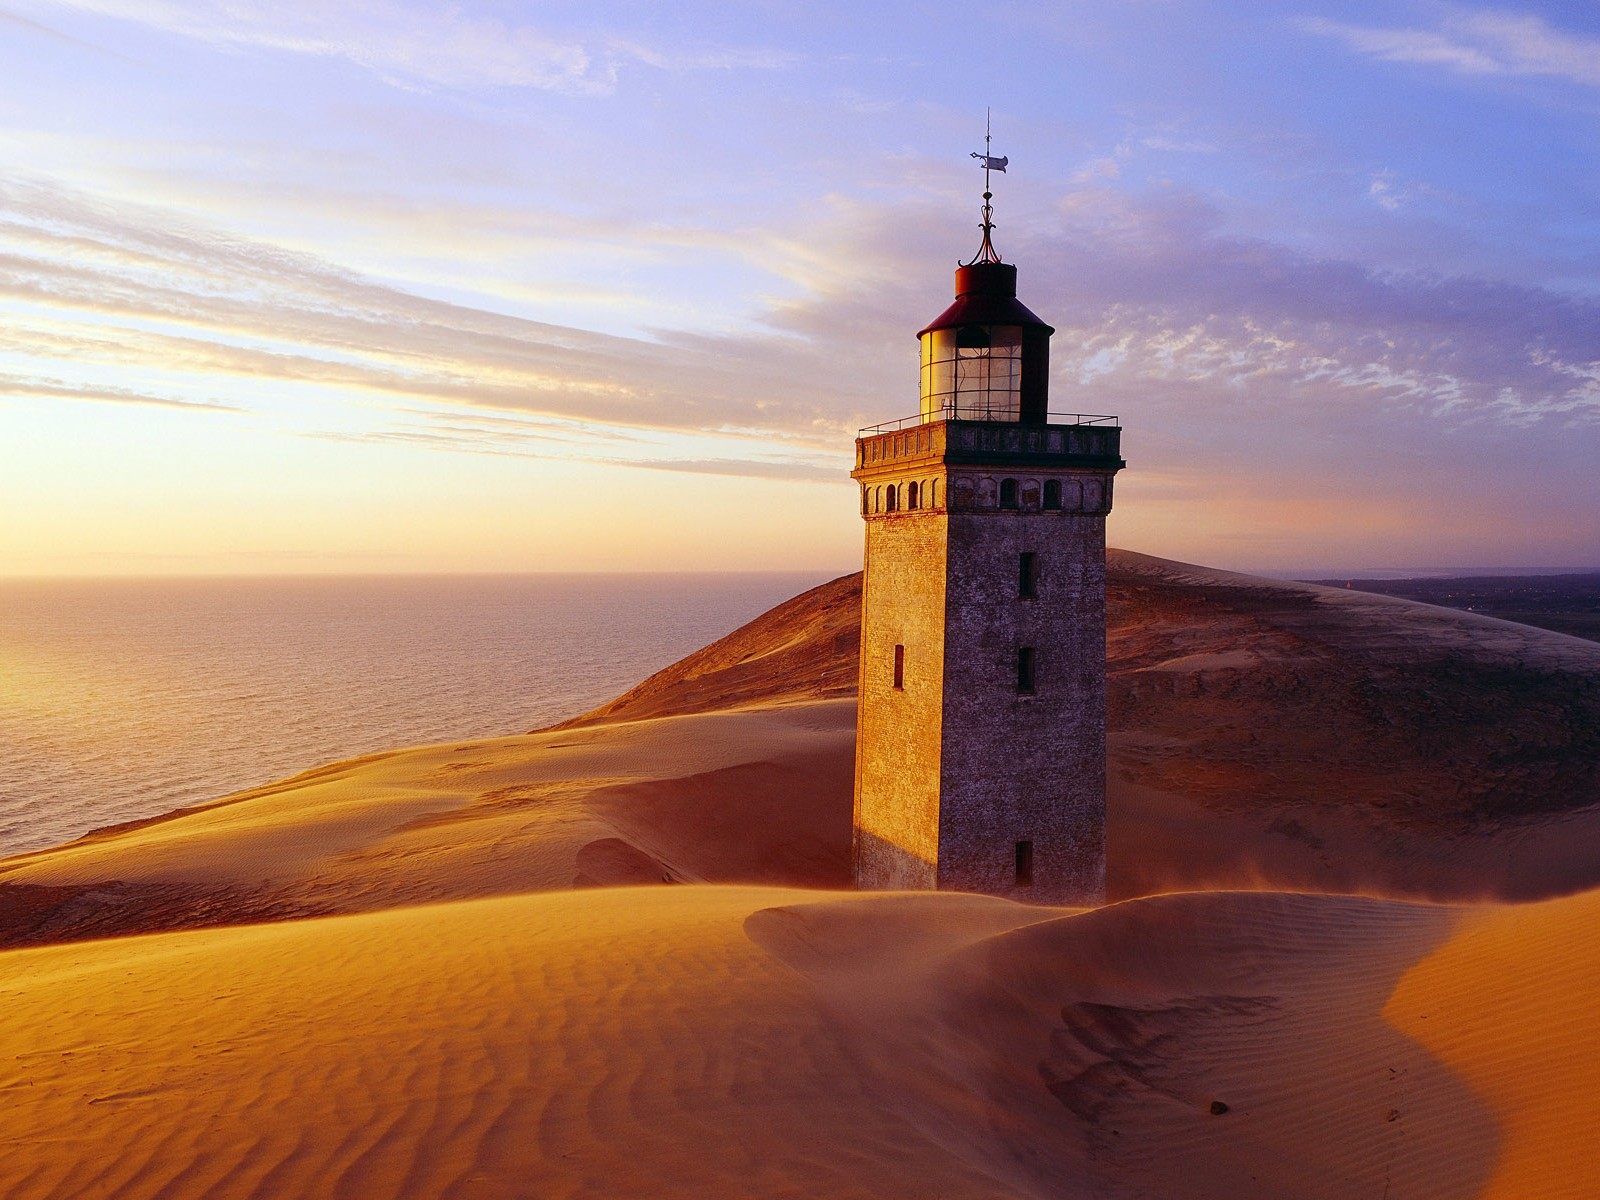 Lighthouse-on-the-Desert-Wallpaper.jpg